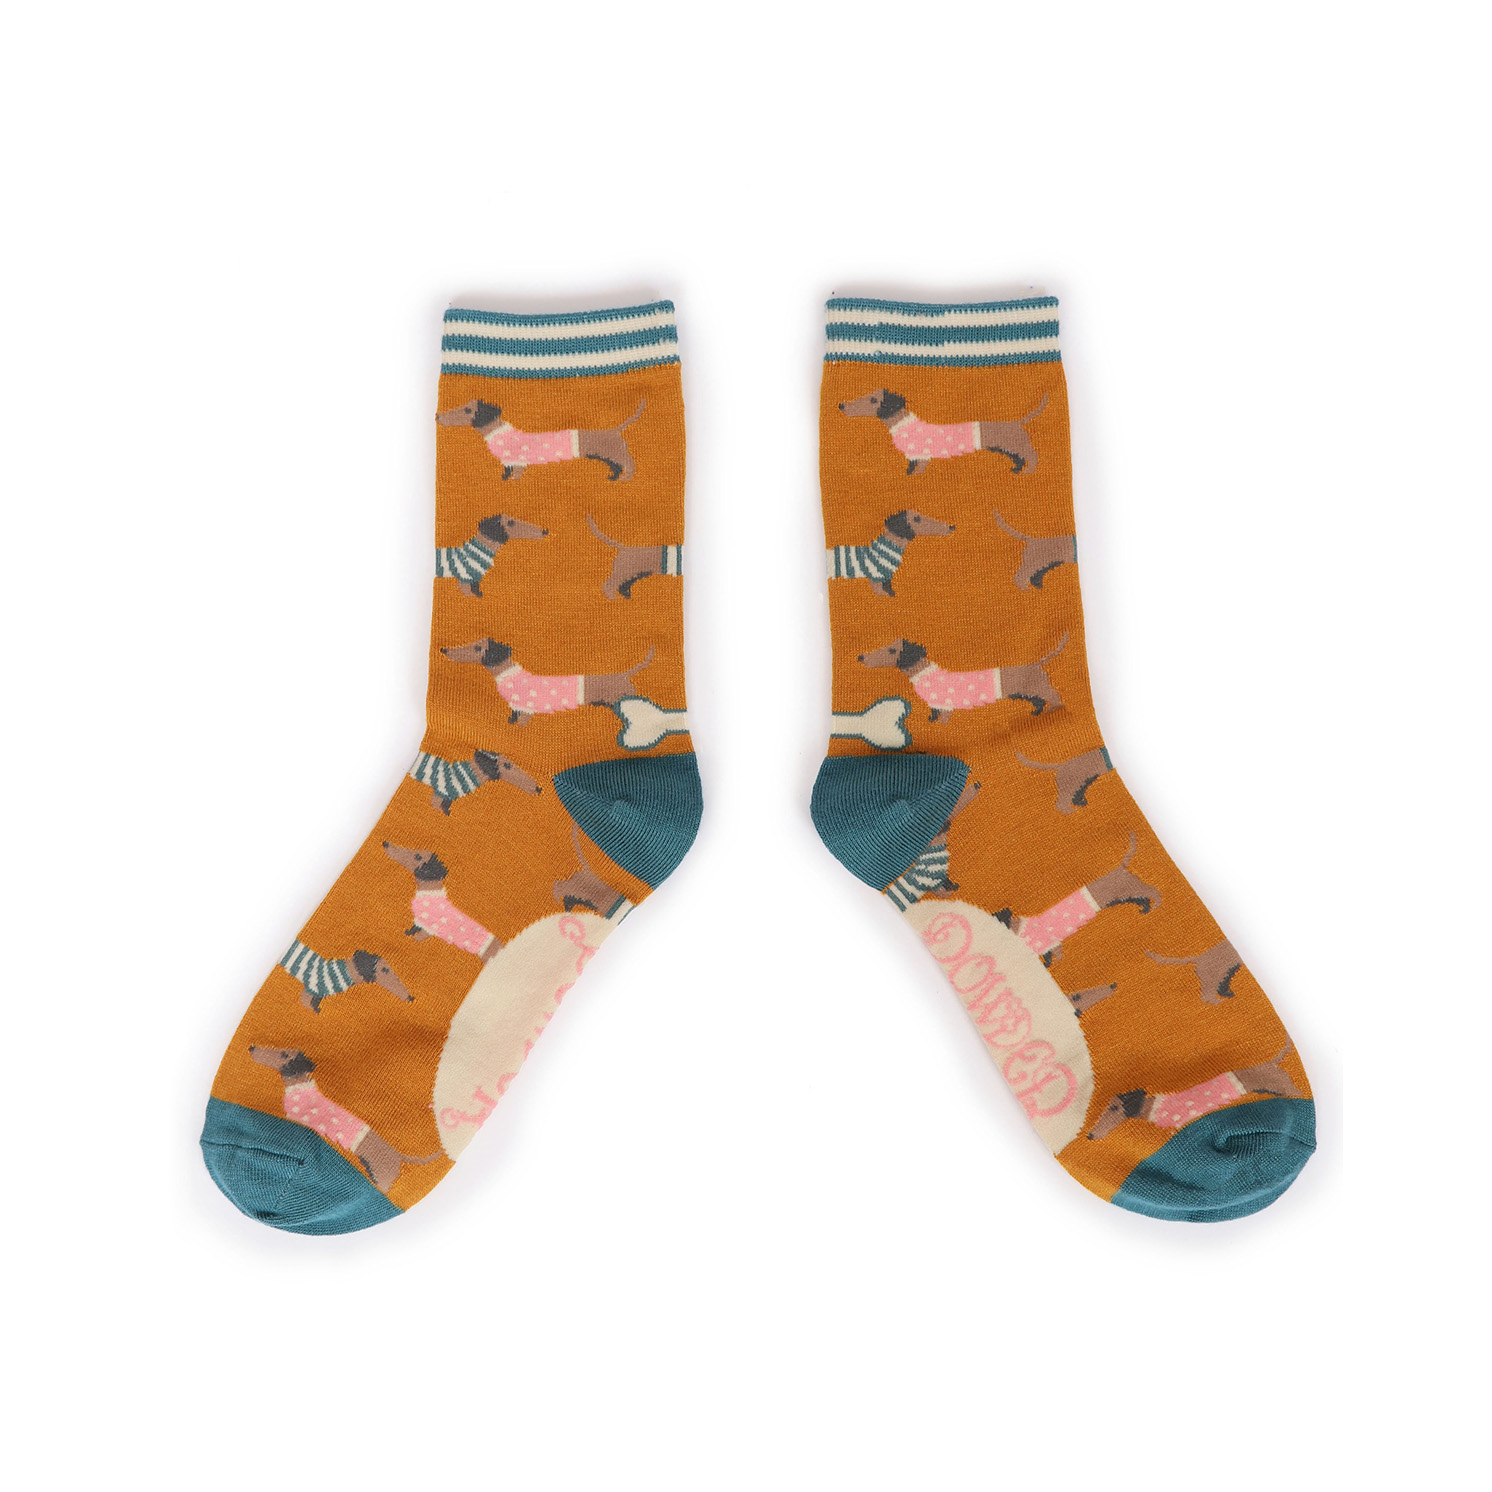 Powder – Mustard Jumper Sausage Dog Ankle Socks with Presentation Gift Bag